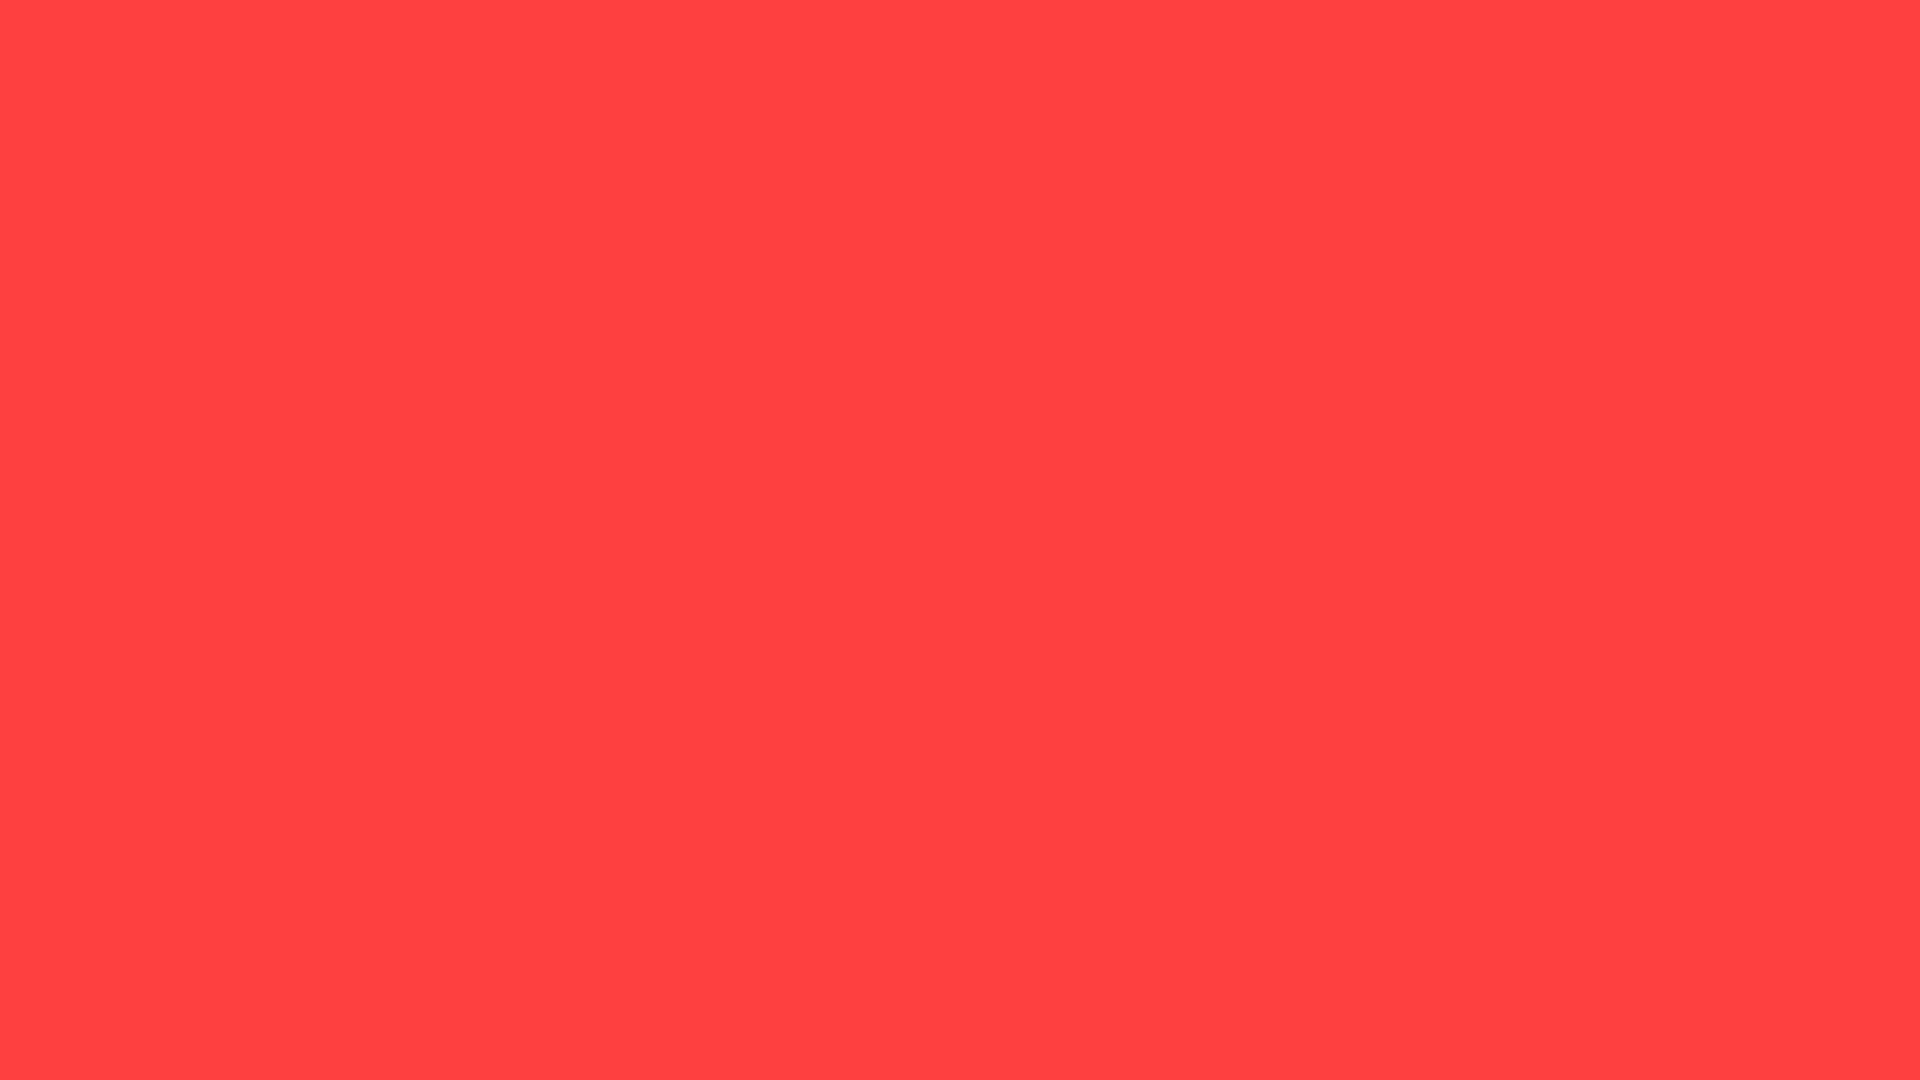 1920x1080 Coral Red Solid Color Background